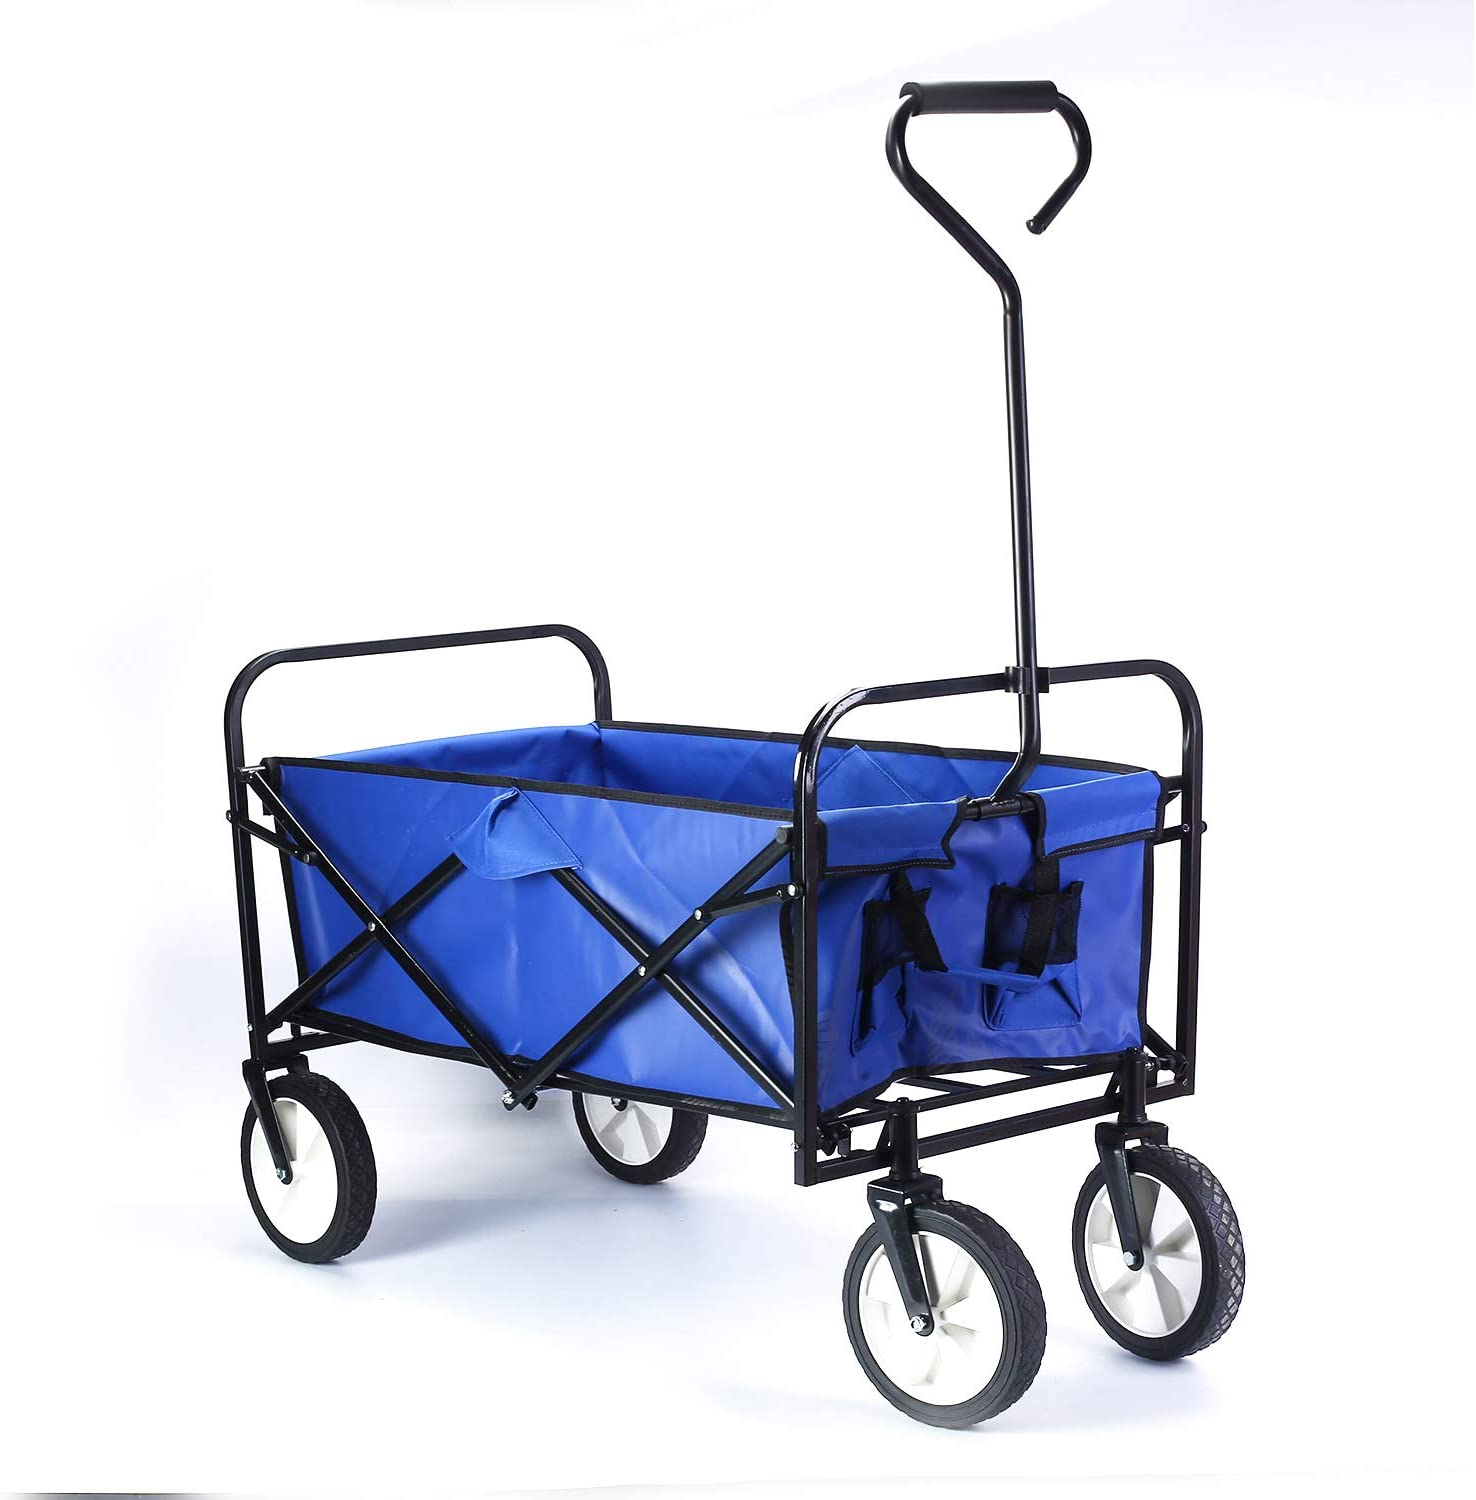 Nisorpa Collapsible Outdoor Utility Wagon Blue Compact Garden Camping Cart Heavy Duty Wheelbarrow Shopping Carts with Wheels for Grocery Sports Equipment Tailgating